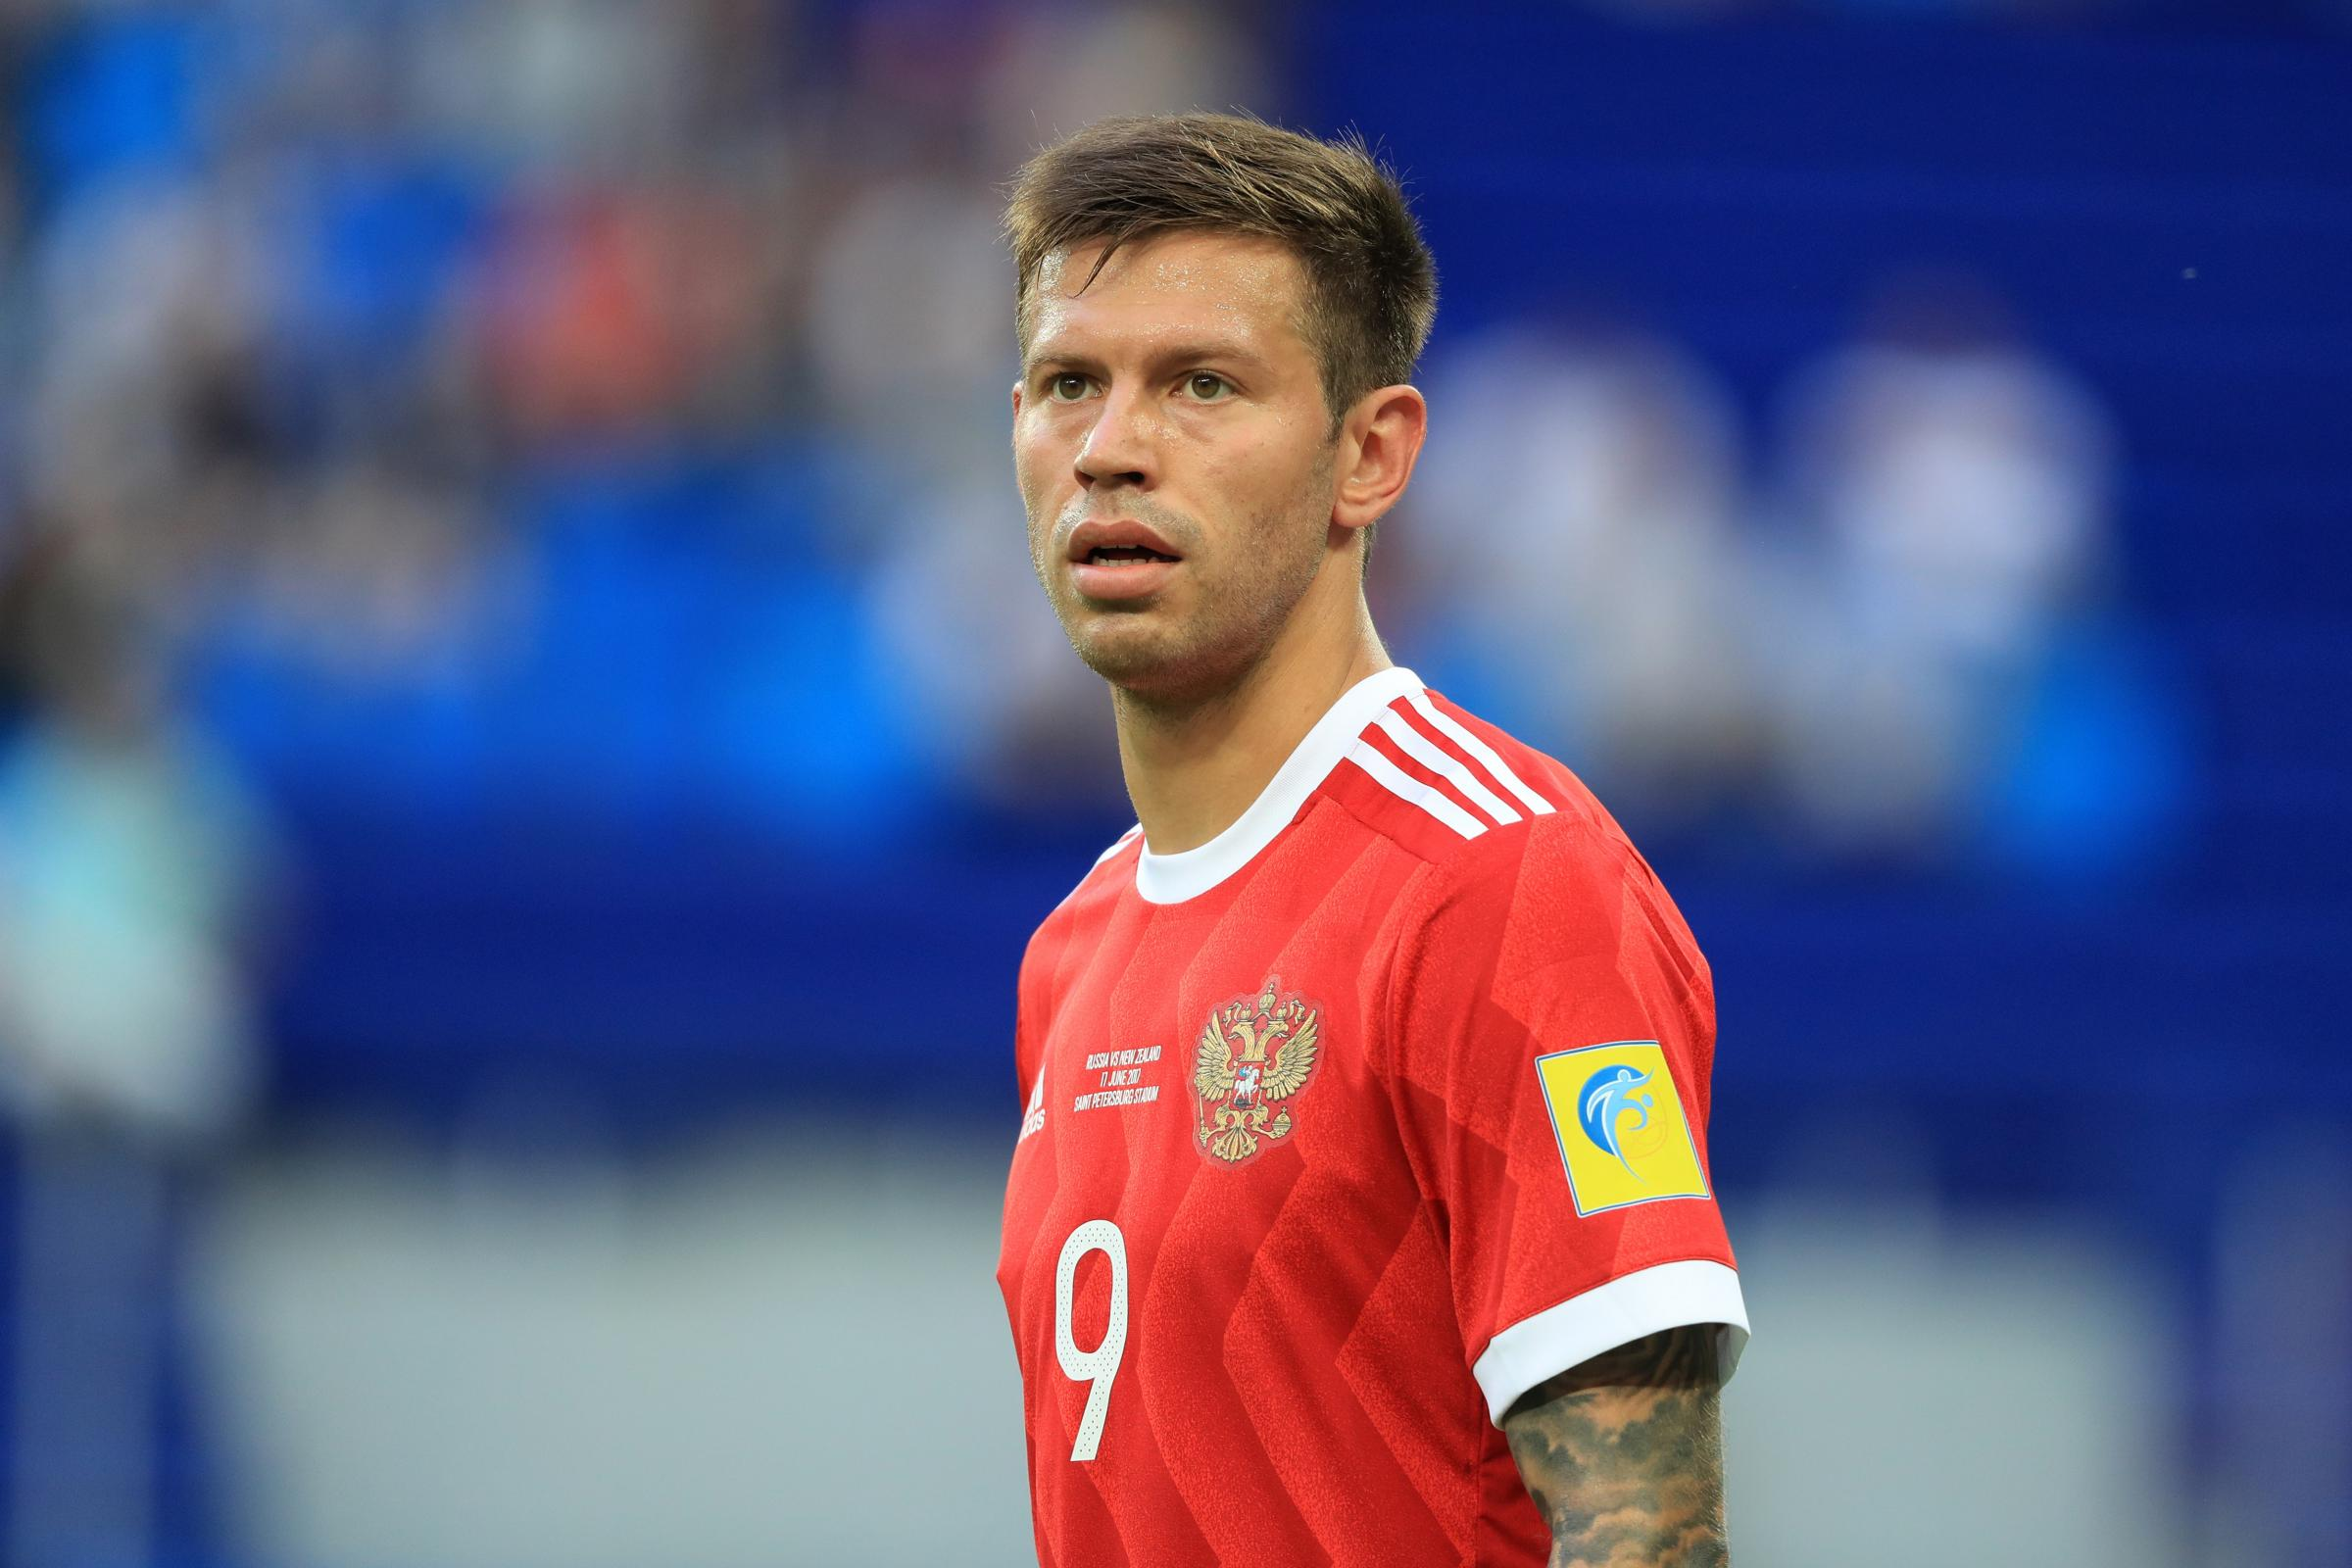 Russia striker Fyodor Smolov believes the World Cup's legacy will benefit future generations,